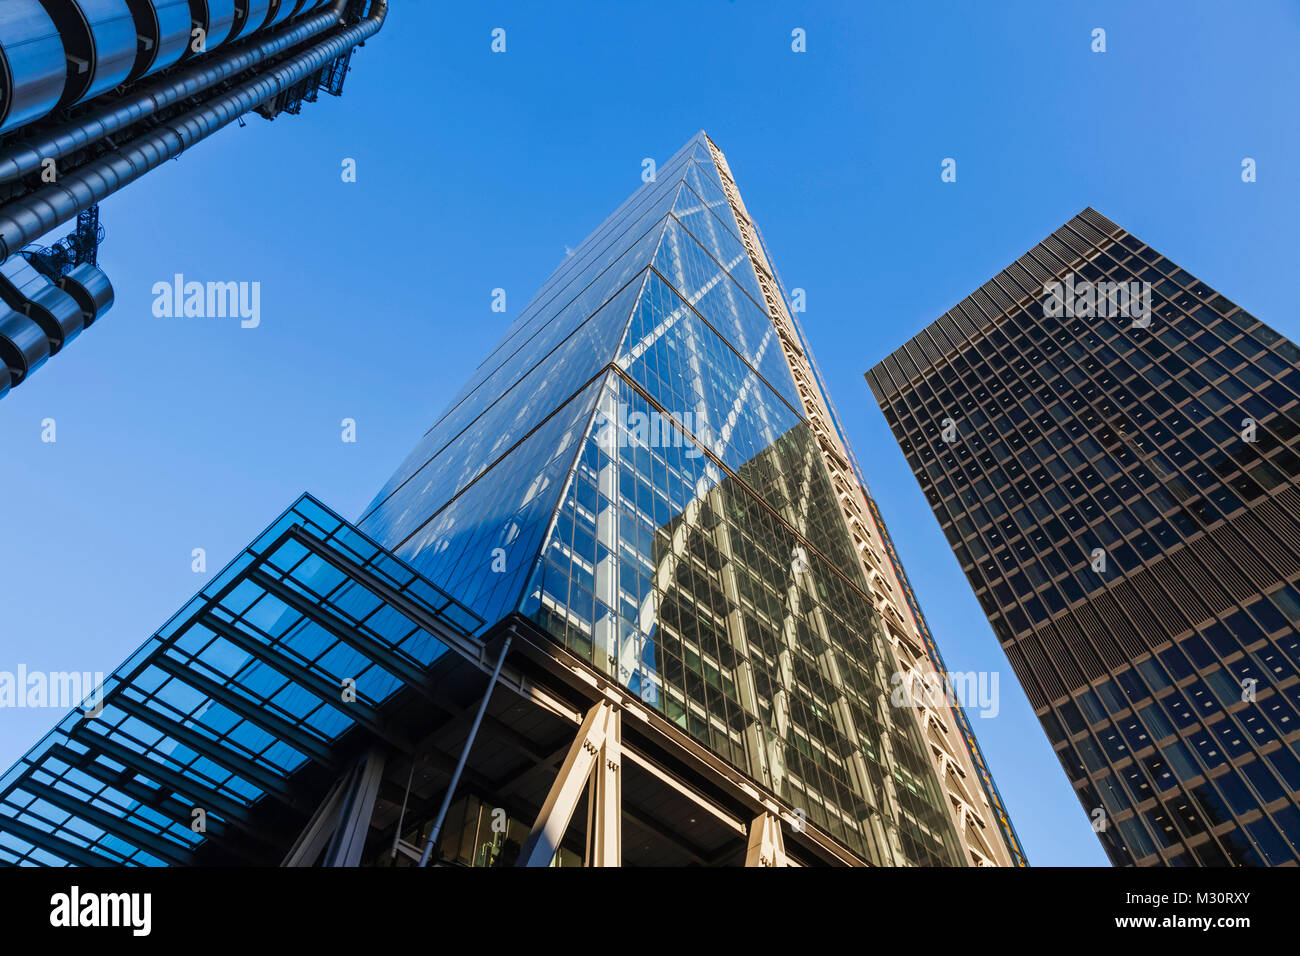 England, London, The City, Leadenhall Street, The Leadenhall Building aka The Cheesegrater - Stock Image